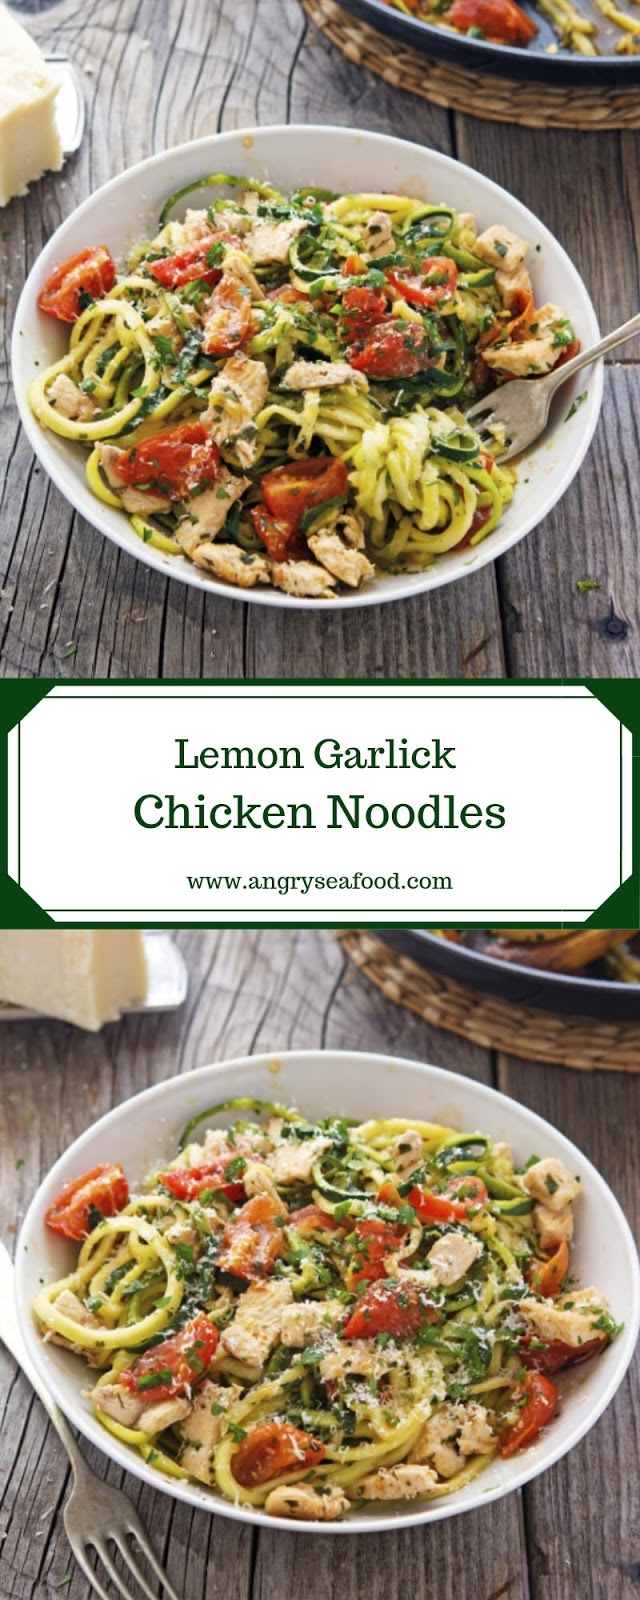 Lemon Garlick Chicken Noodles